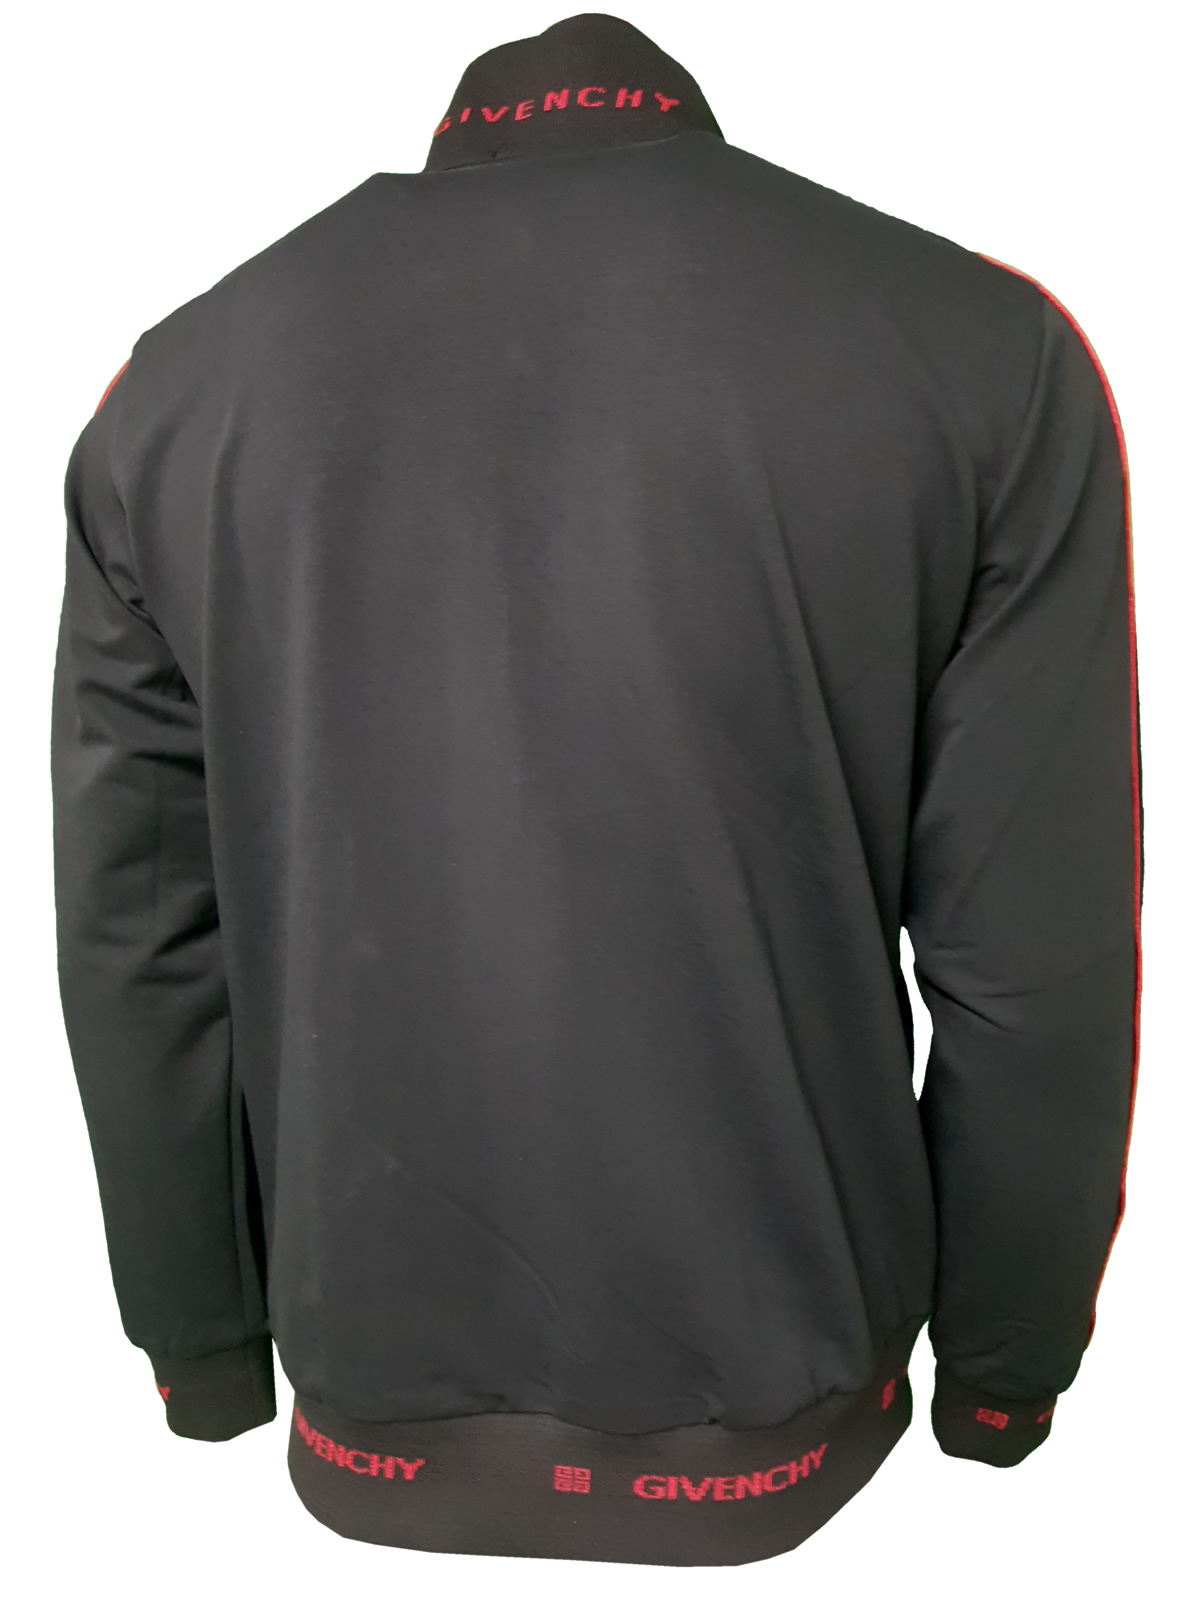 4e30ed5eb9aa8 Givenchy Men s Complete 2 Piece Top and Bottoms Tracksuit in Black Red - Top  Rear